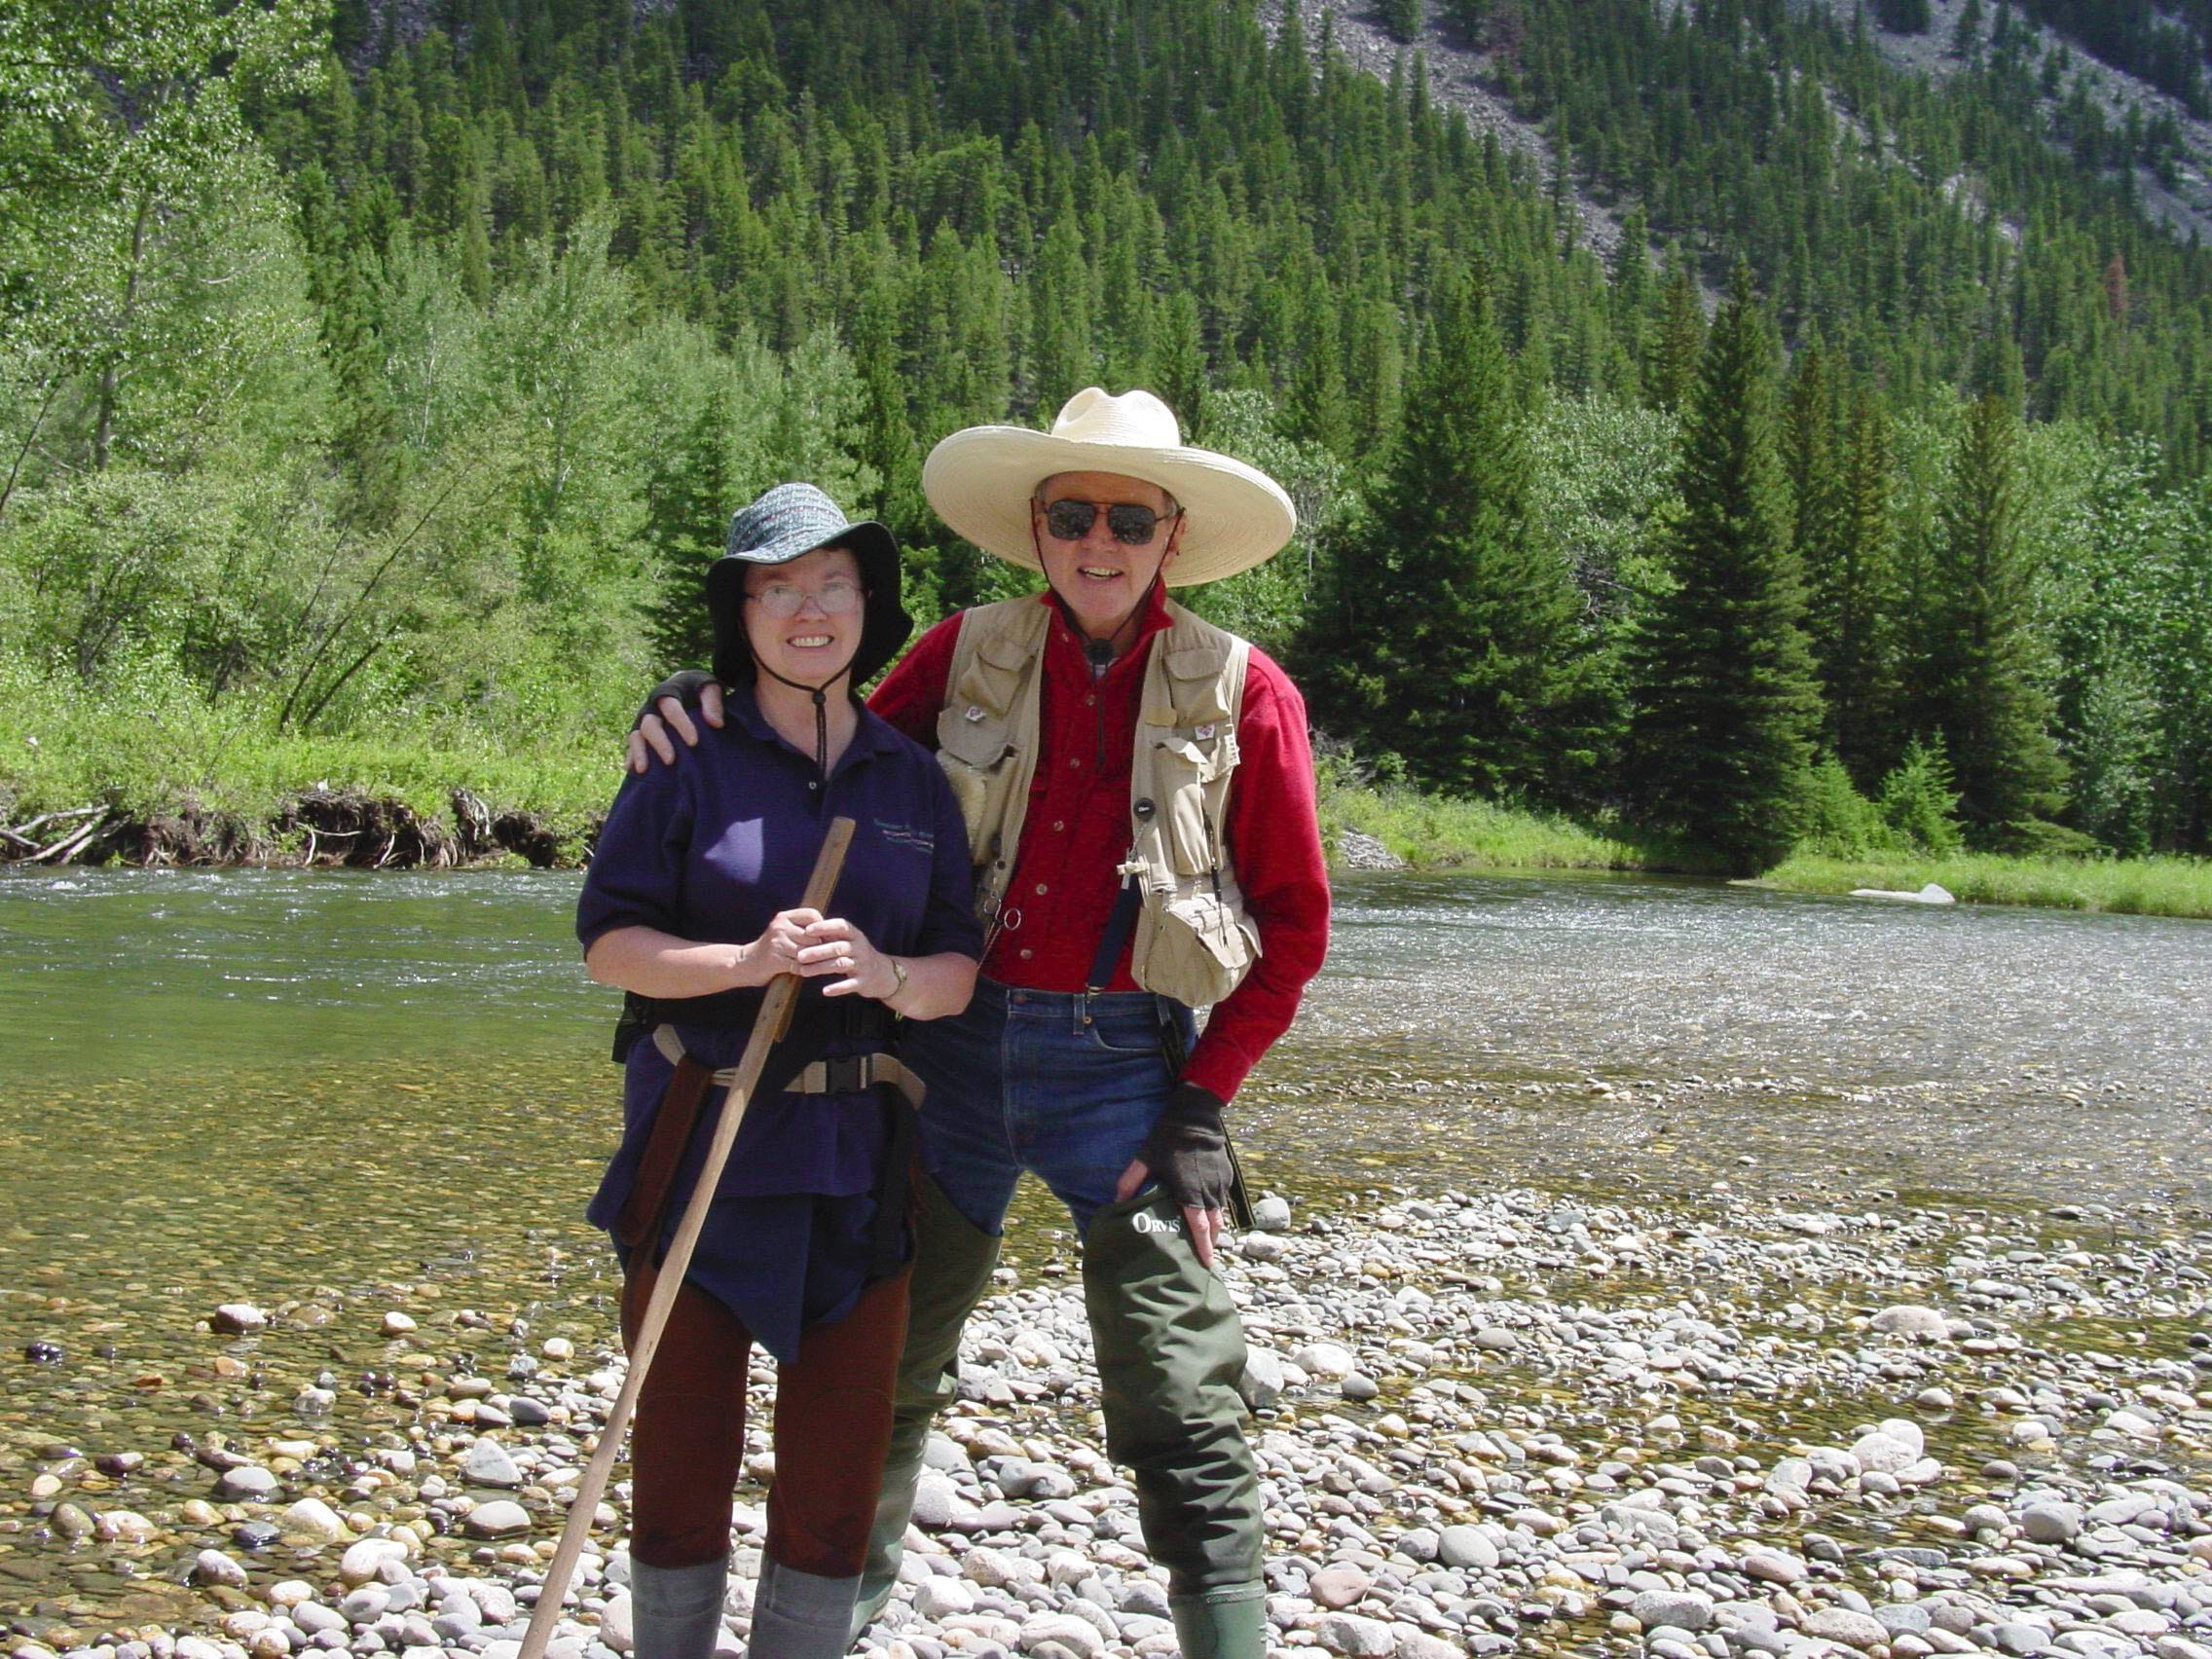 At the Boulder River in Montana in July 2004